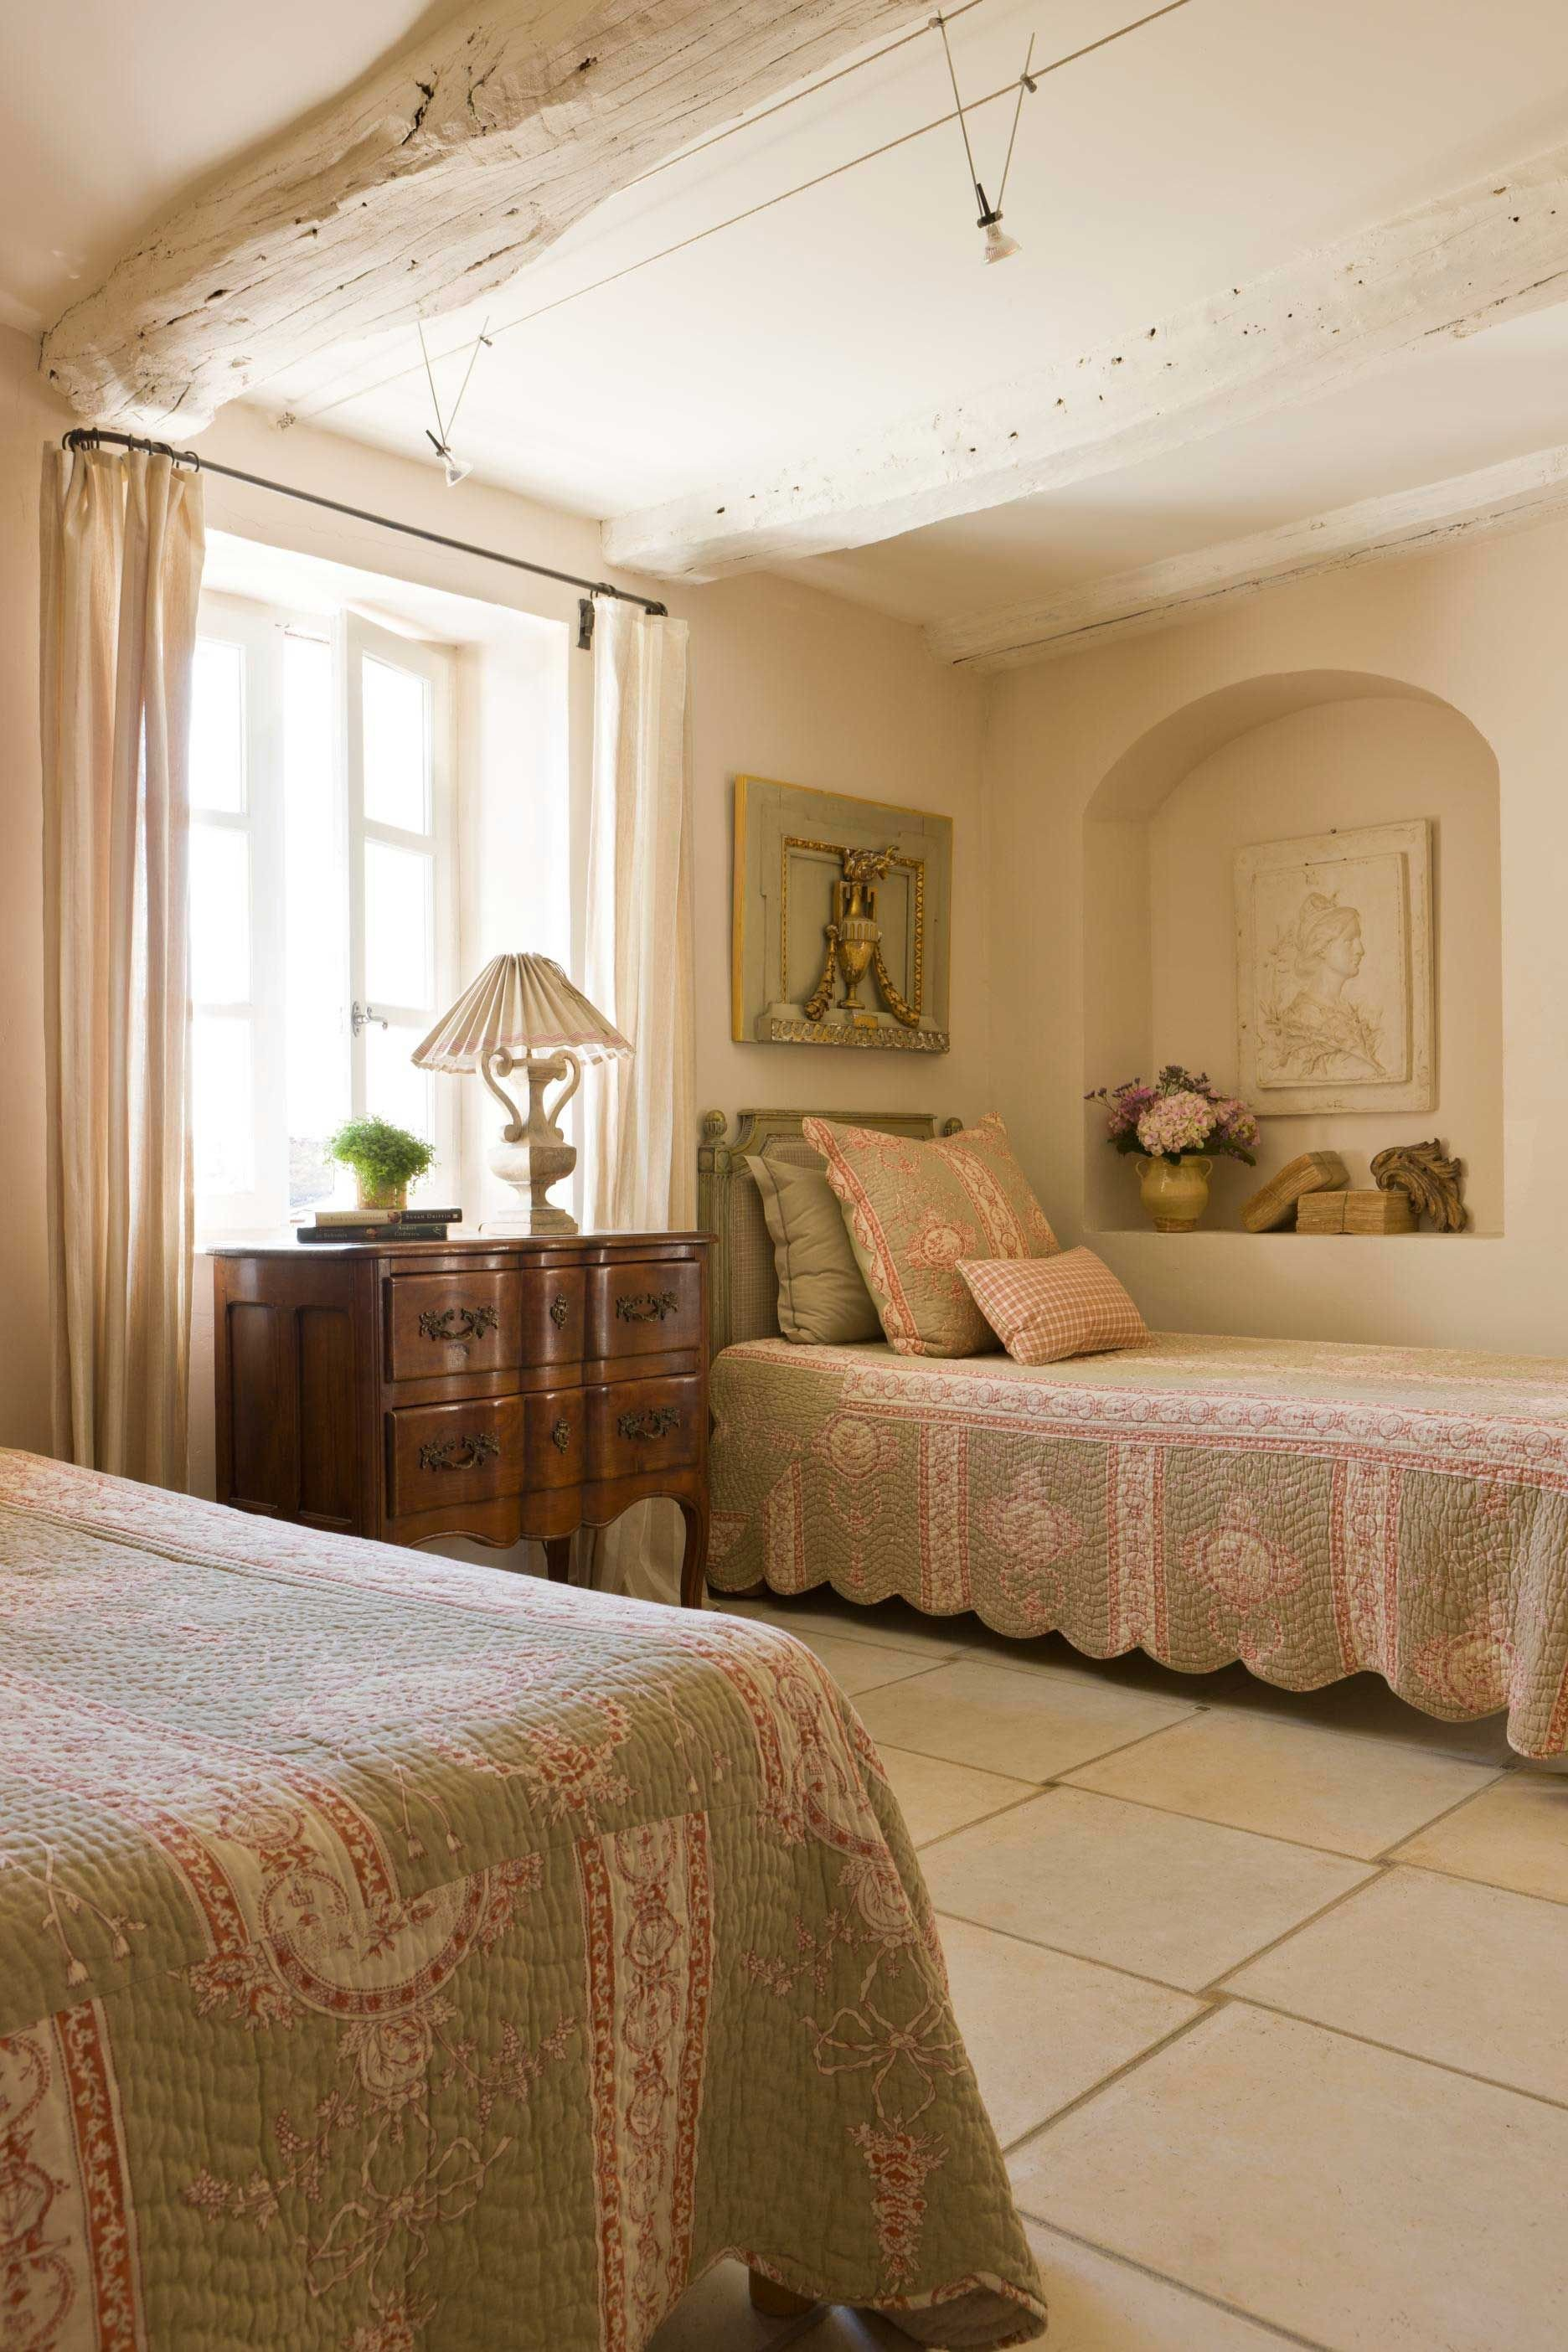 French Country Bedroom Ideas Luxury French Country Home that Embraces History